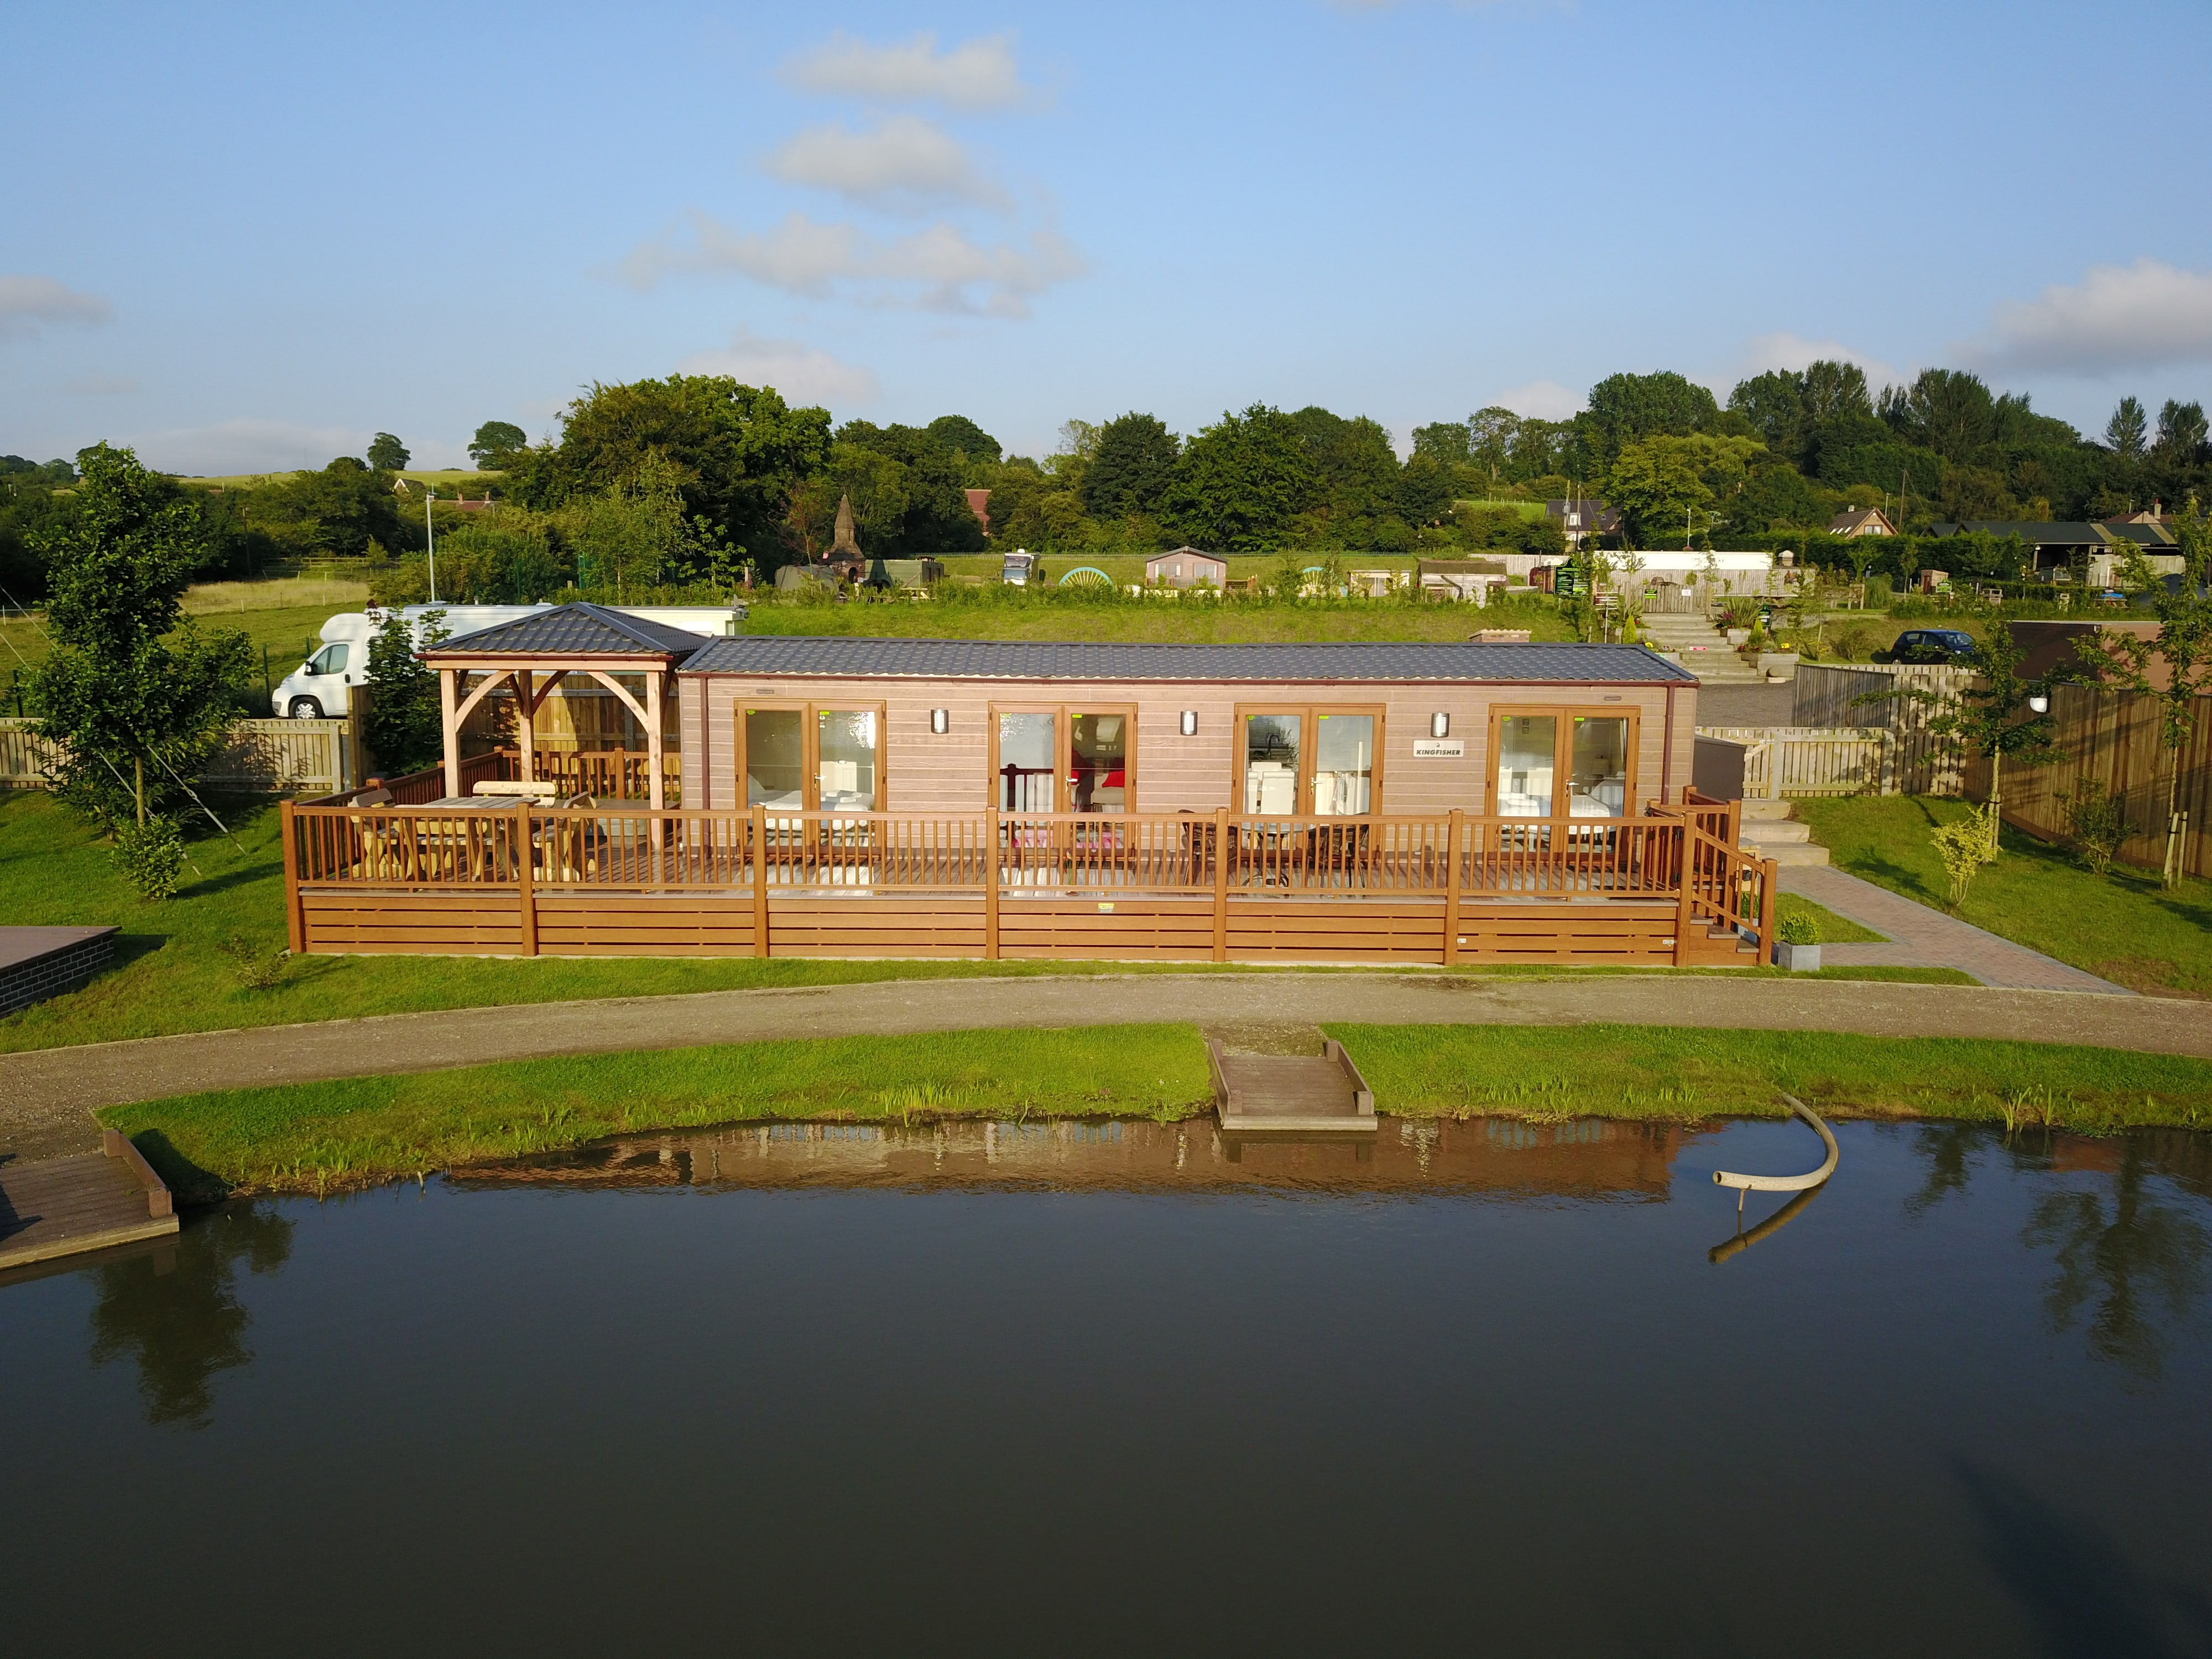 Caistor Lakes